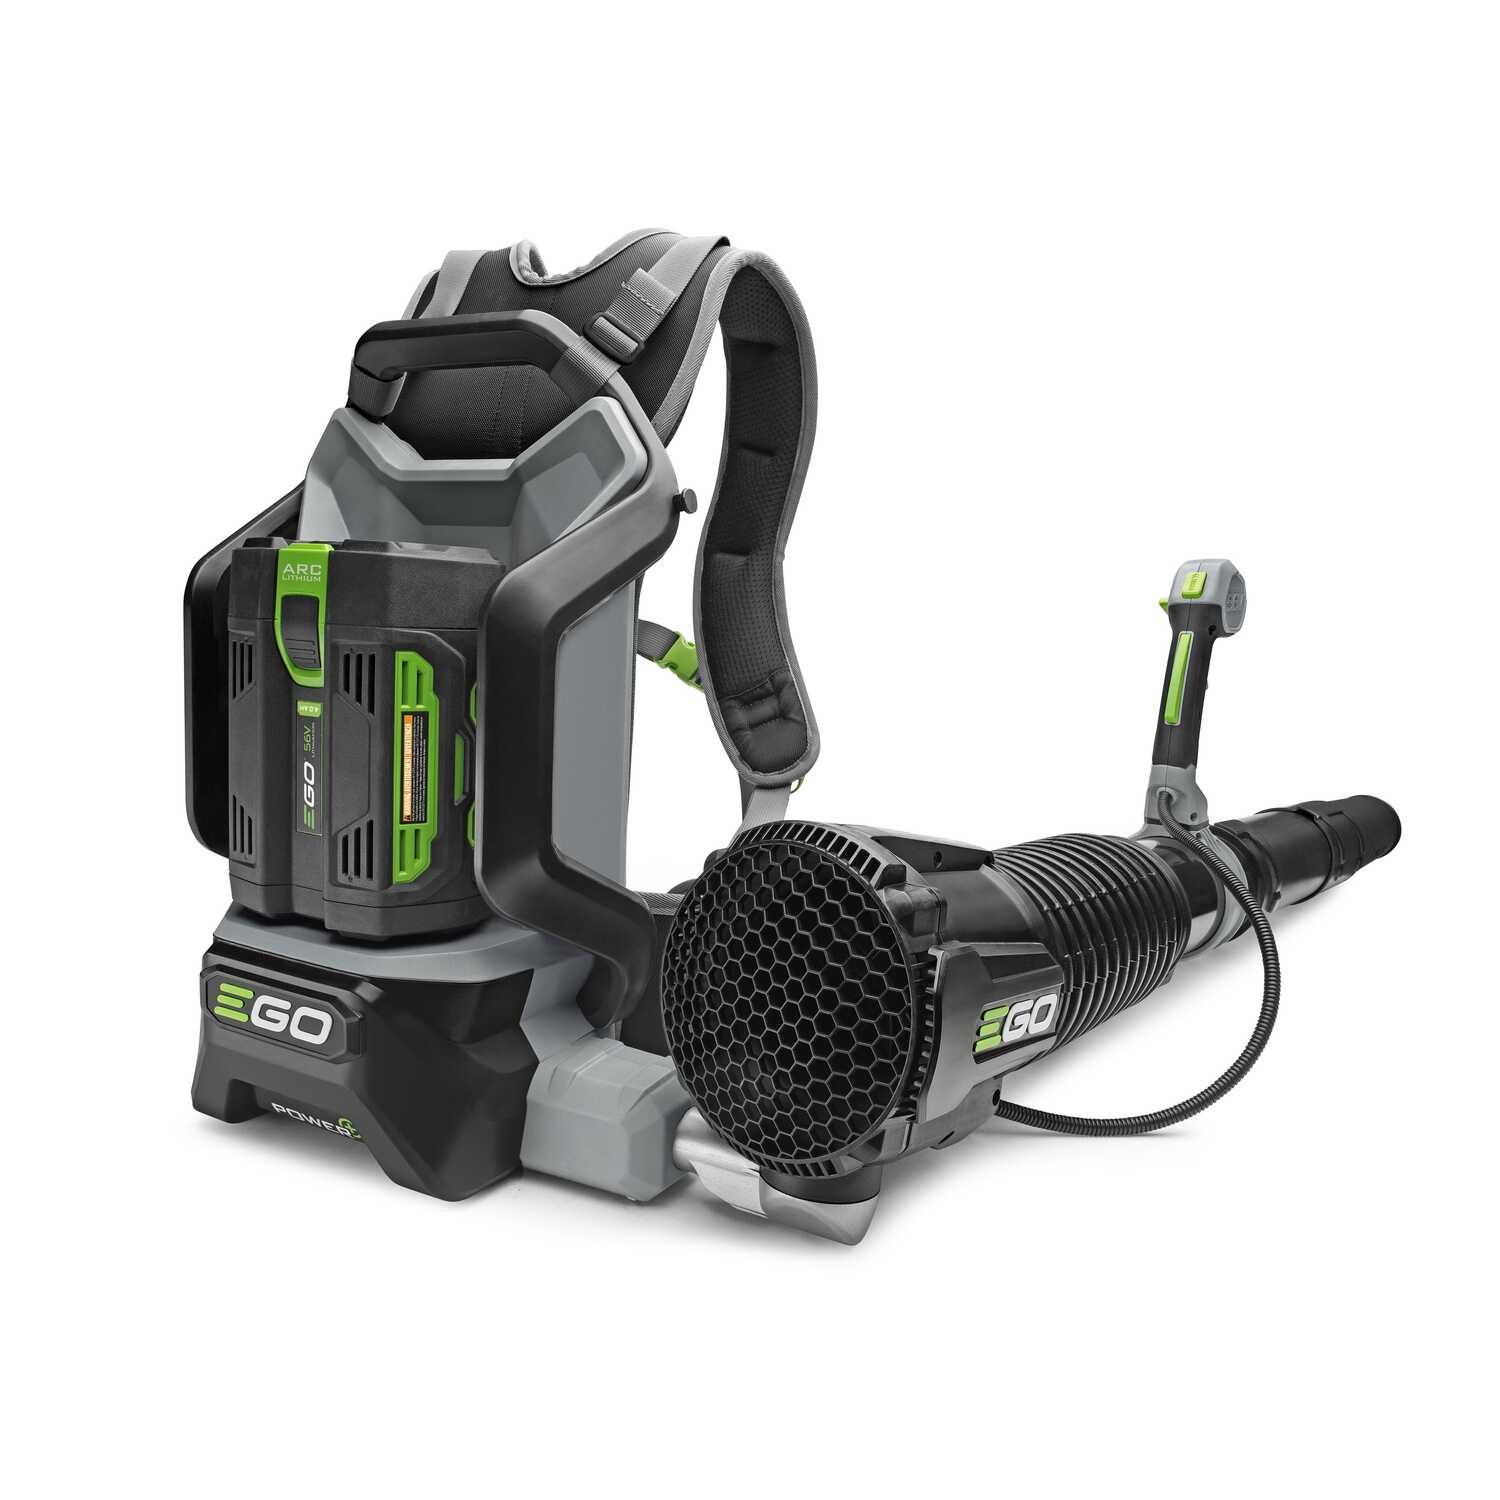 EGO  Battery  Backpack  Leaf Blower